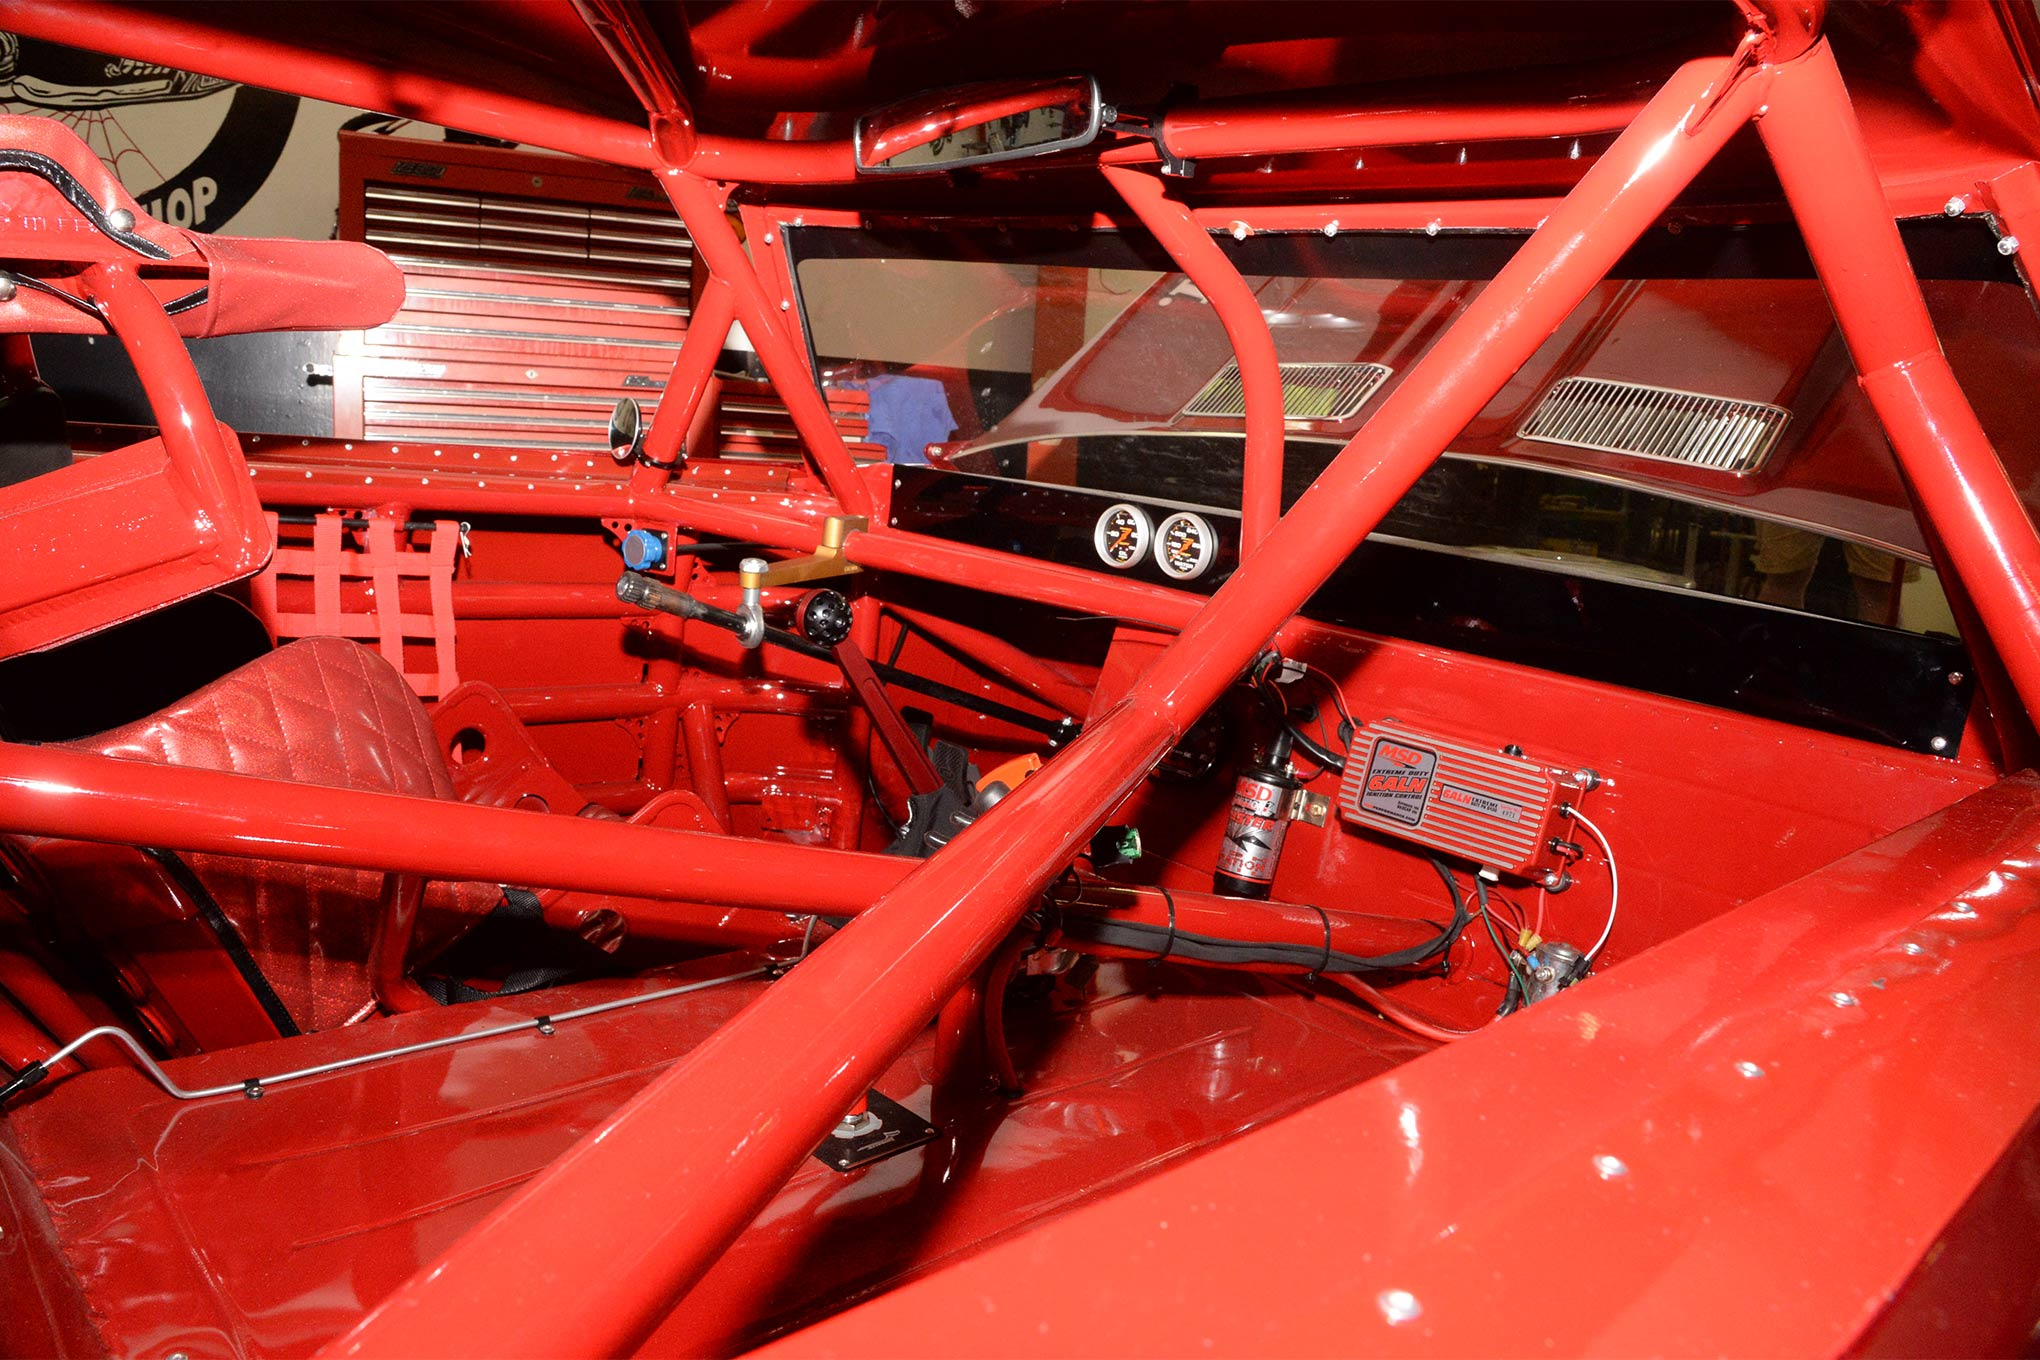 A look inside Porter's Chevelle shows it may be a Vintage racer, but this machine is up to date and looking pristine.